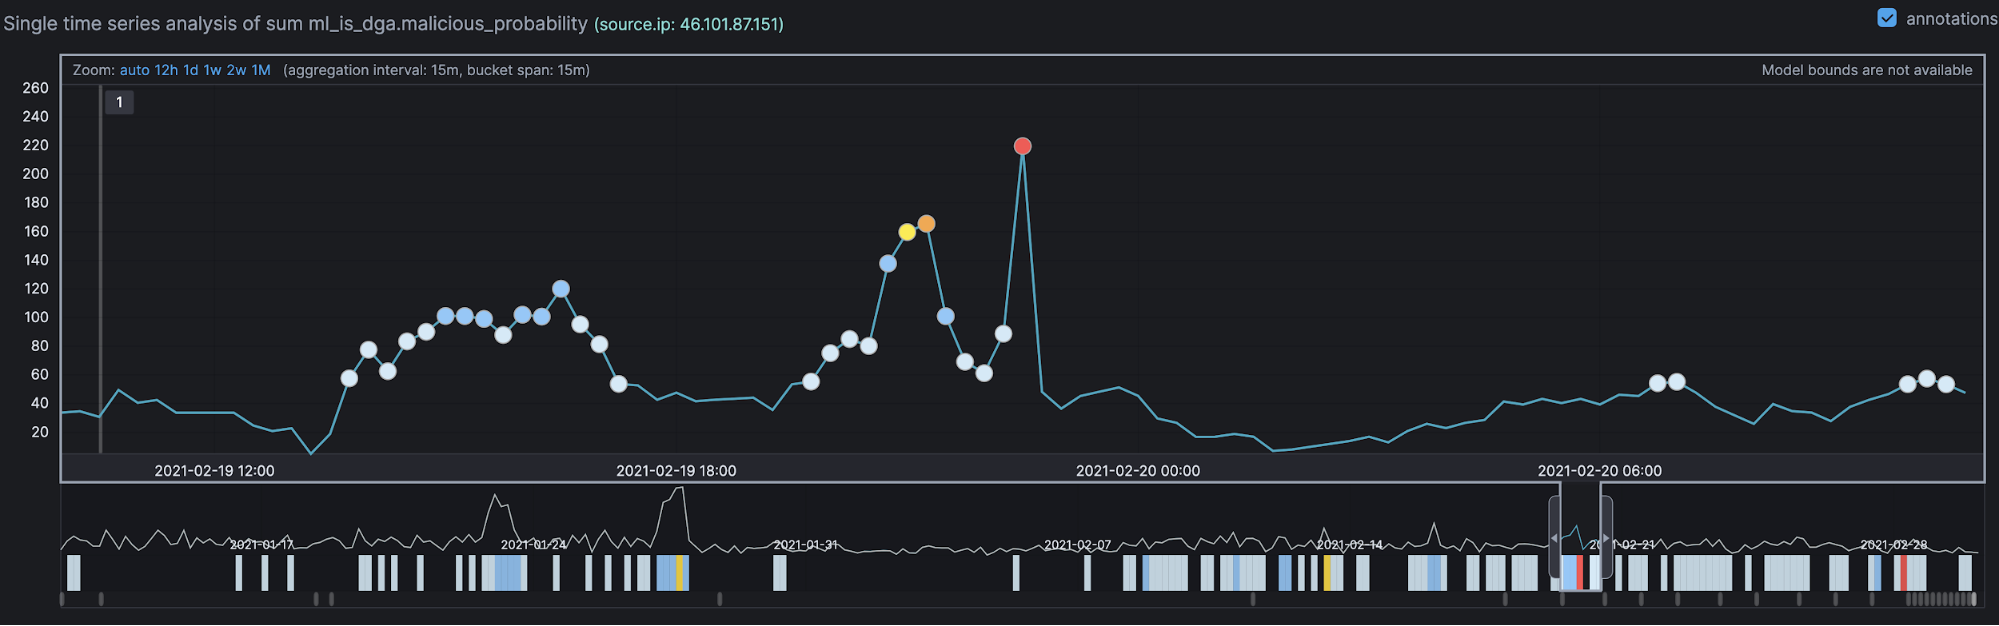 1-anomaly-detection-blog-top-siem-considerations.png